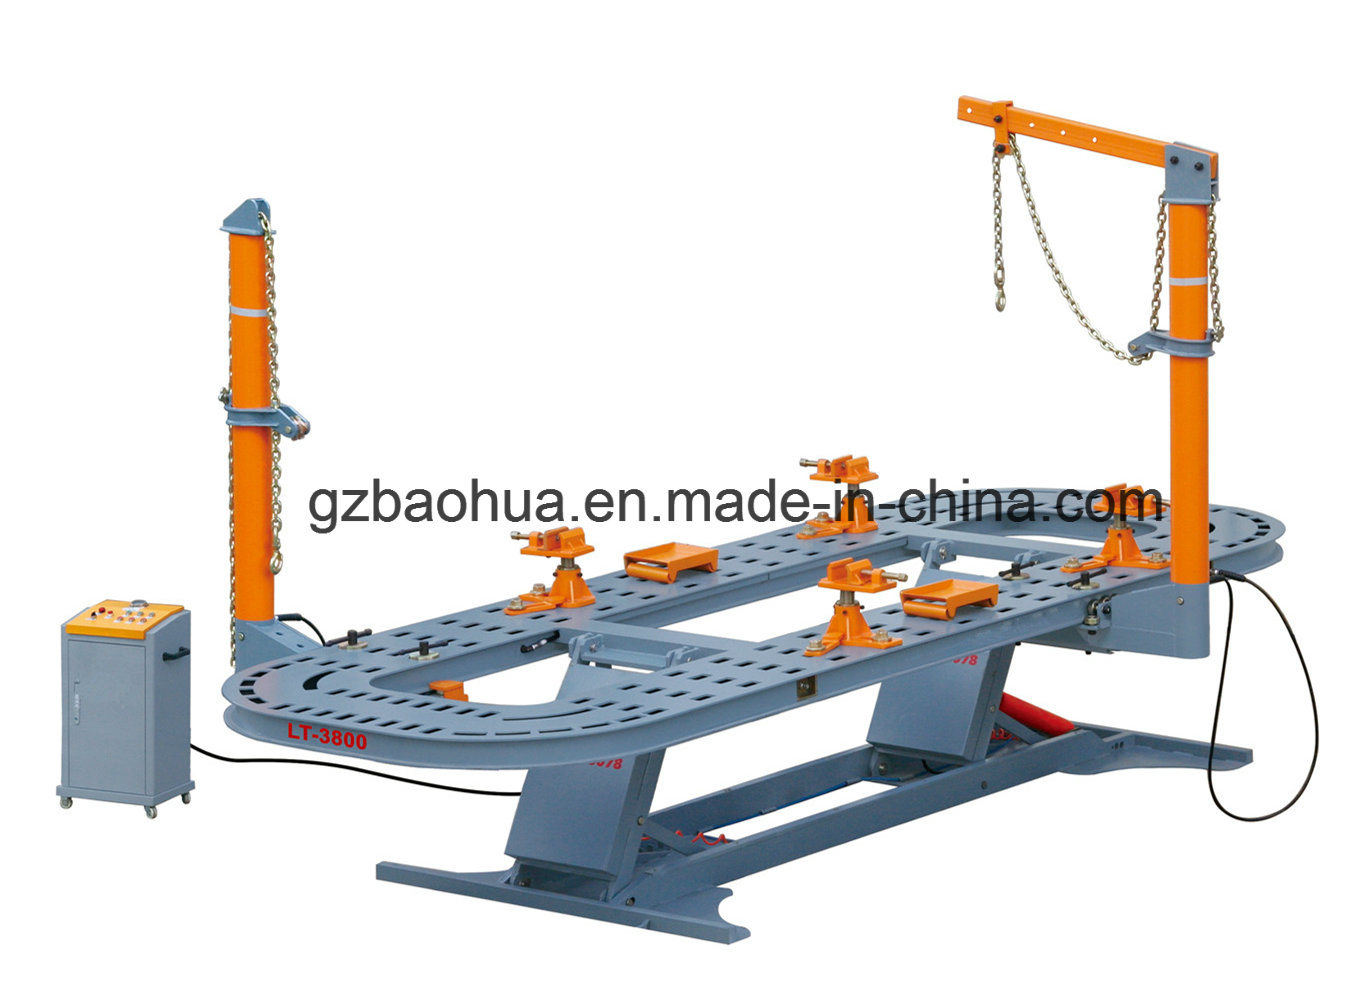 Metal Sheet Repair Equipment